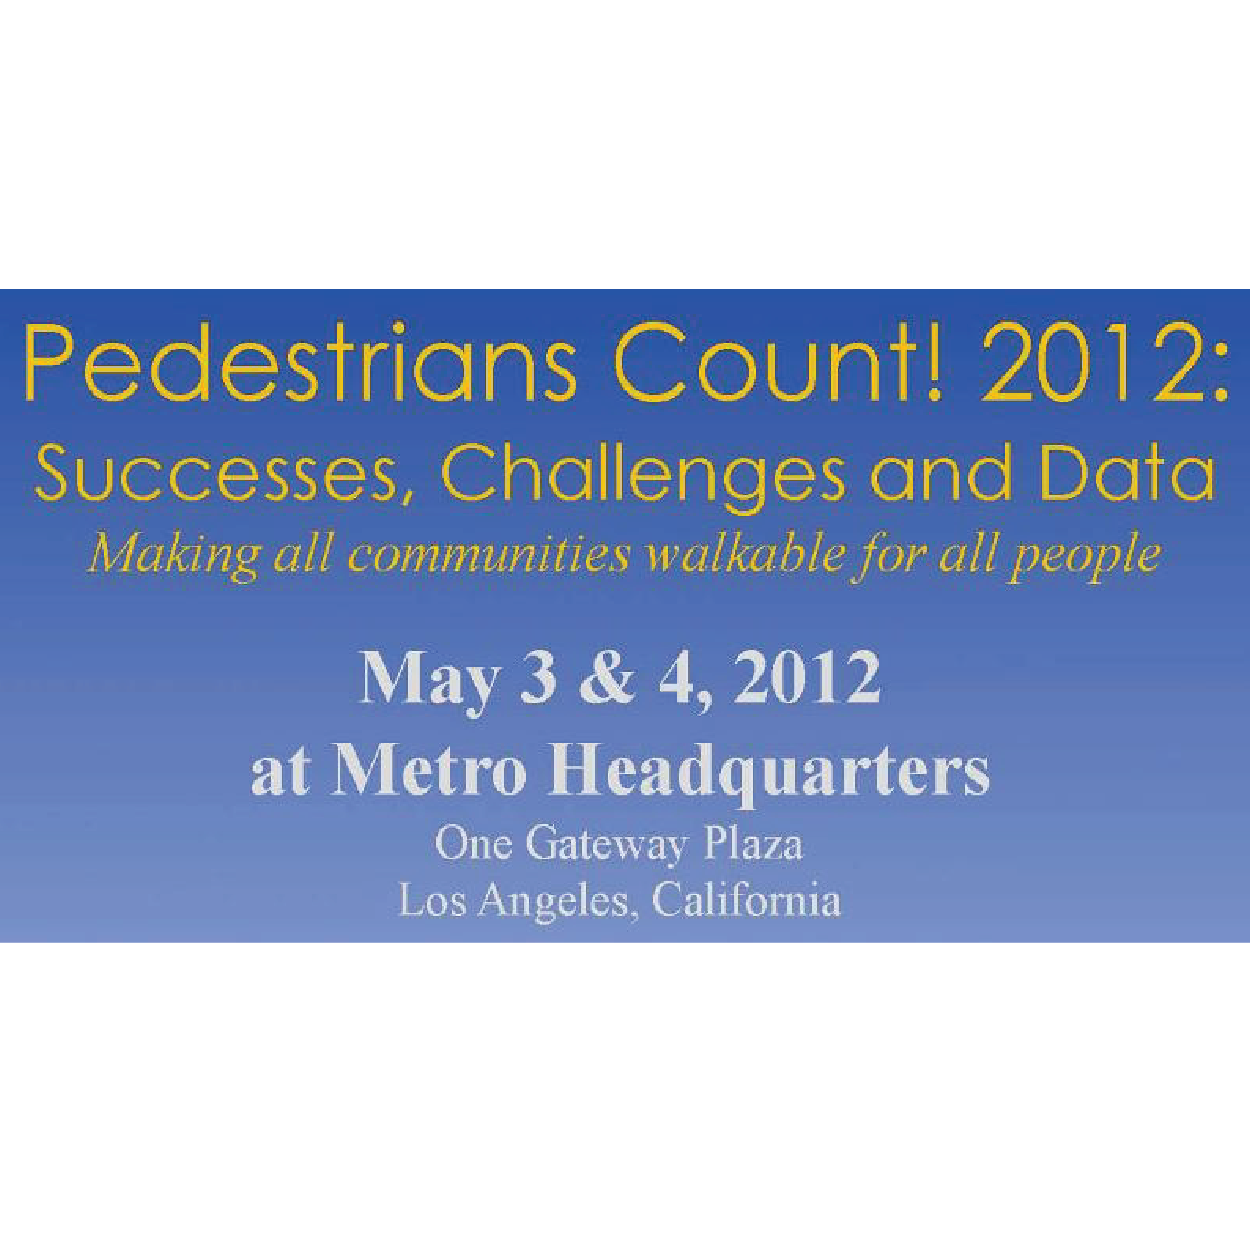 PedsCount 2012 Cover.png